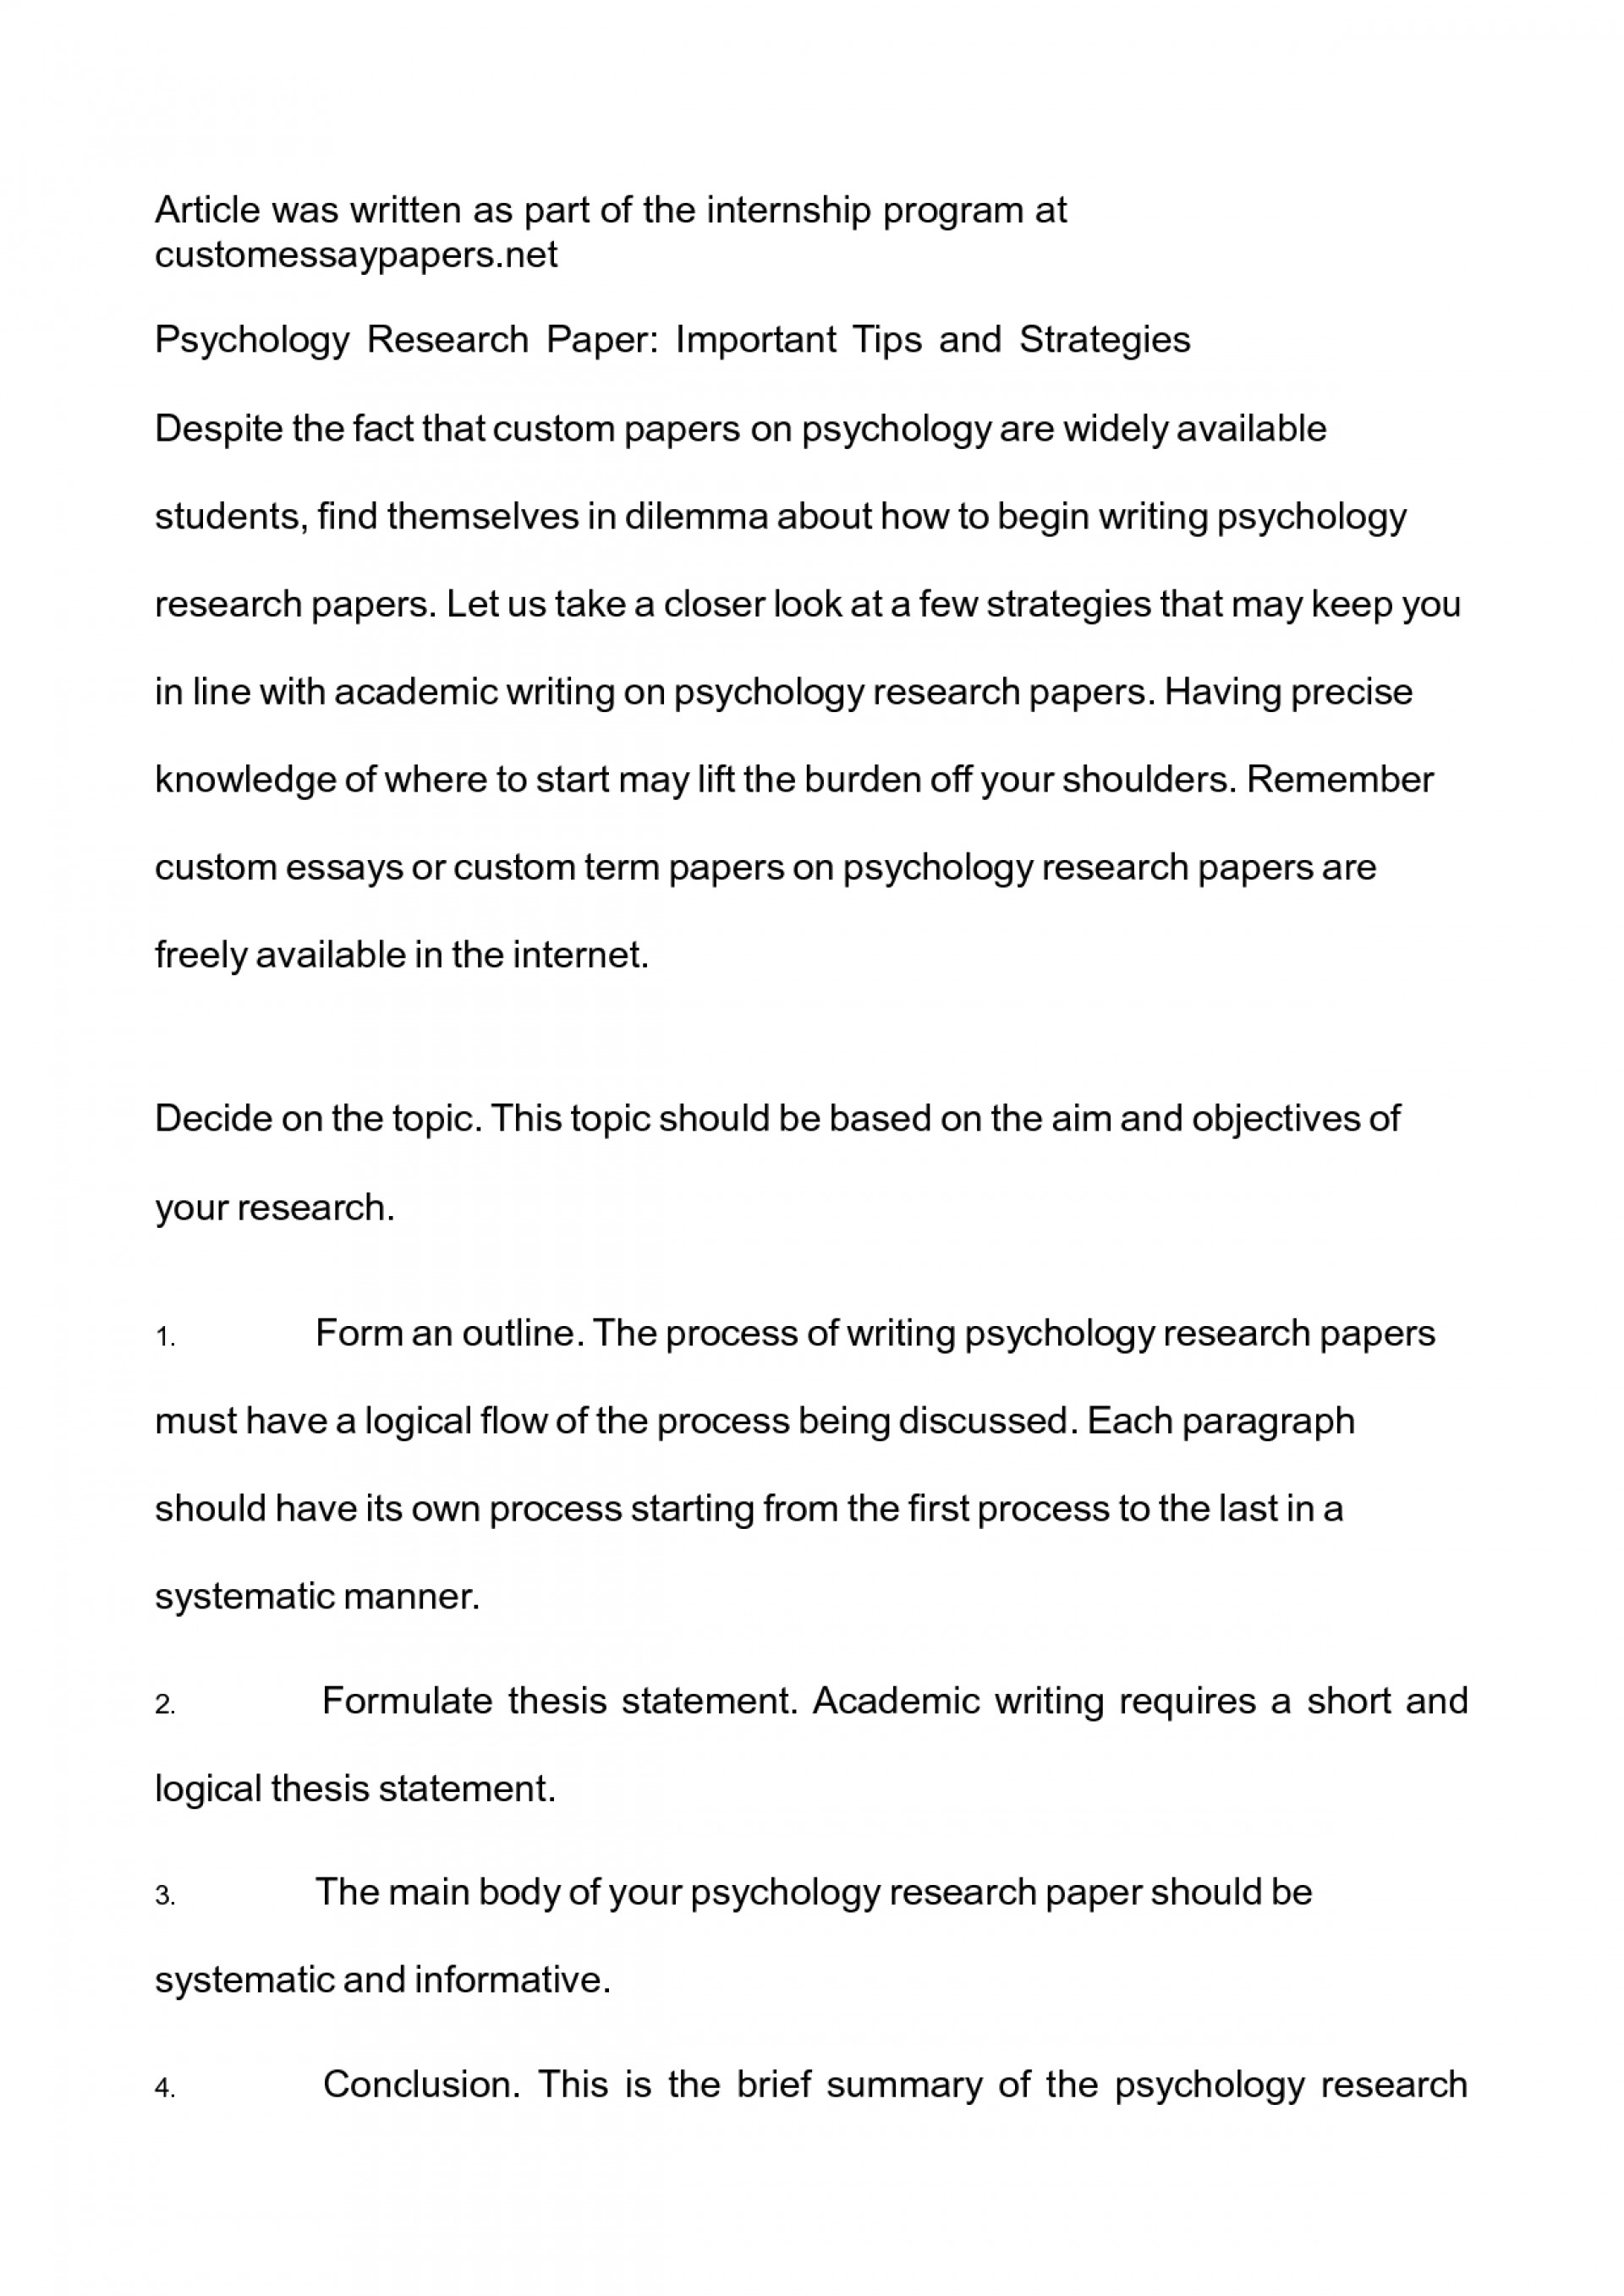 004 Psychology Research Paper Writing Services Wonderful On Free Forensic Pdf Topics 1920